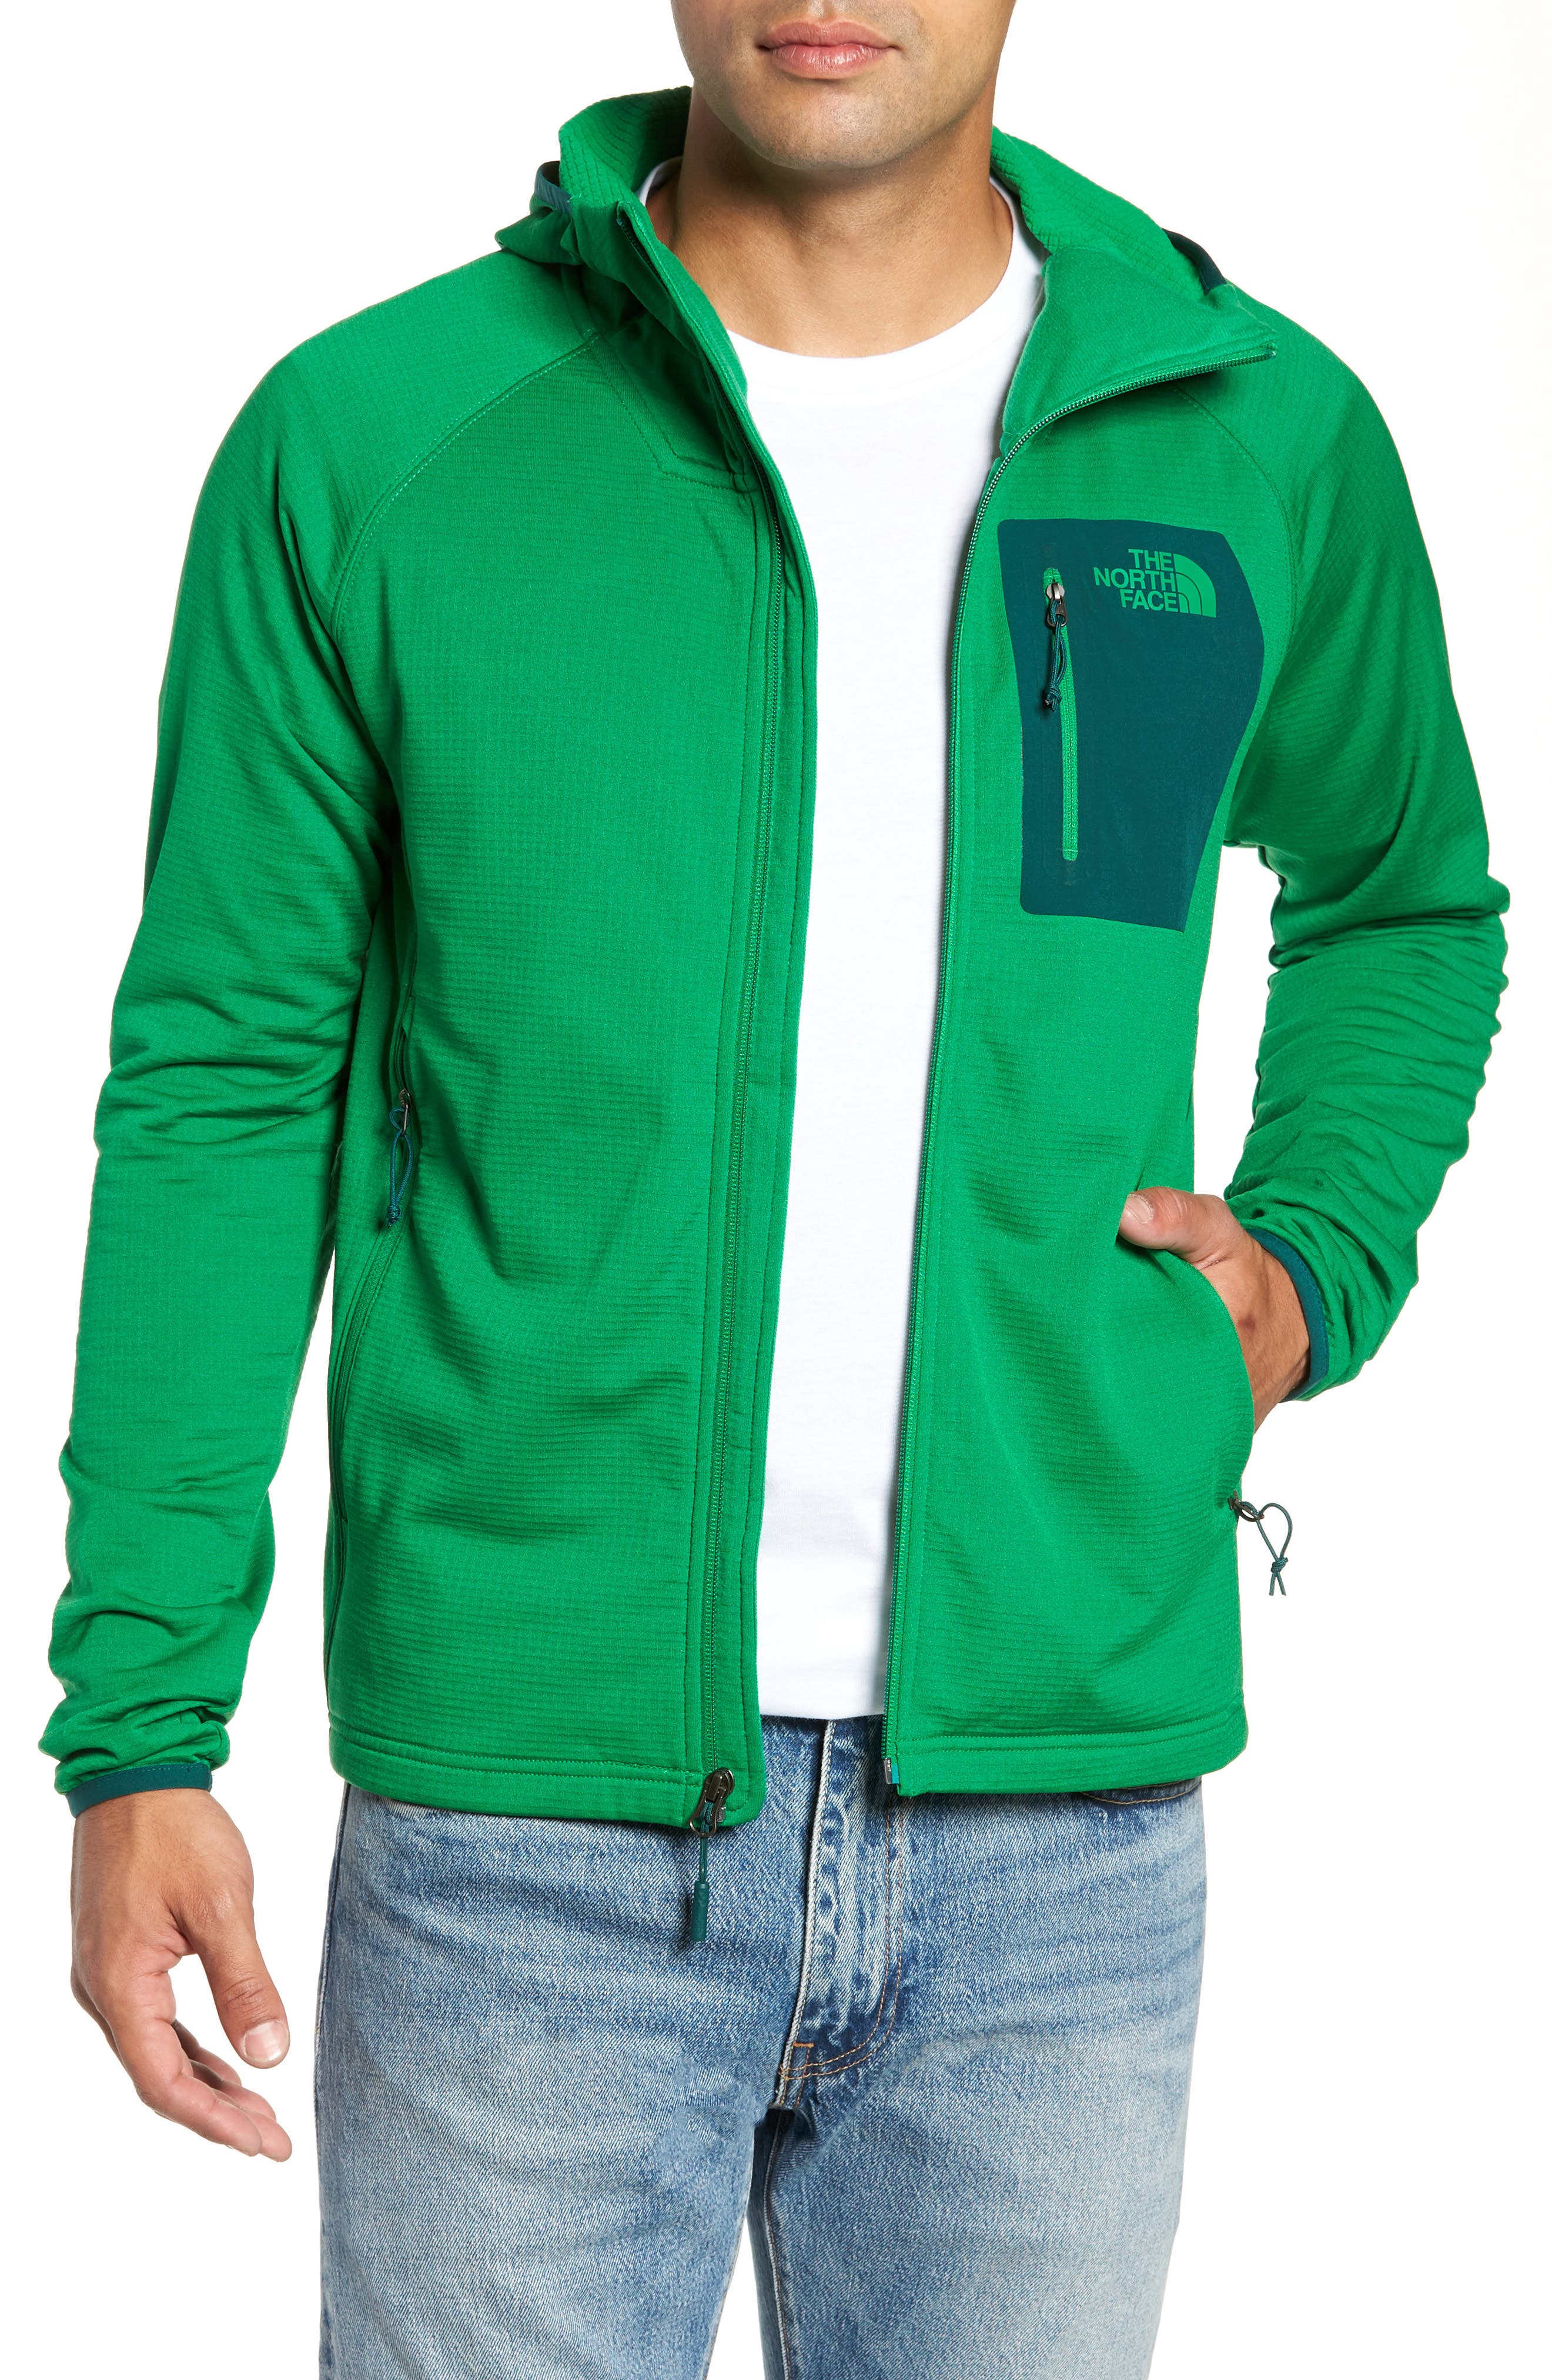 THE NORTH FACE Borod Zip Fleece Jacket, Main, color, 301